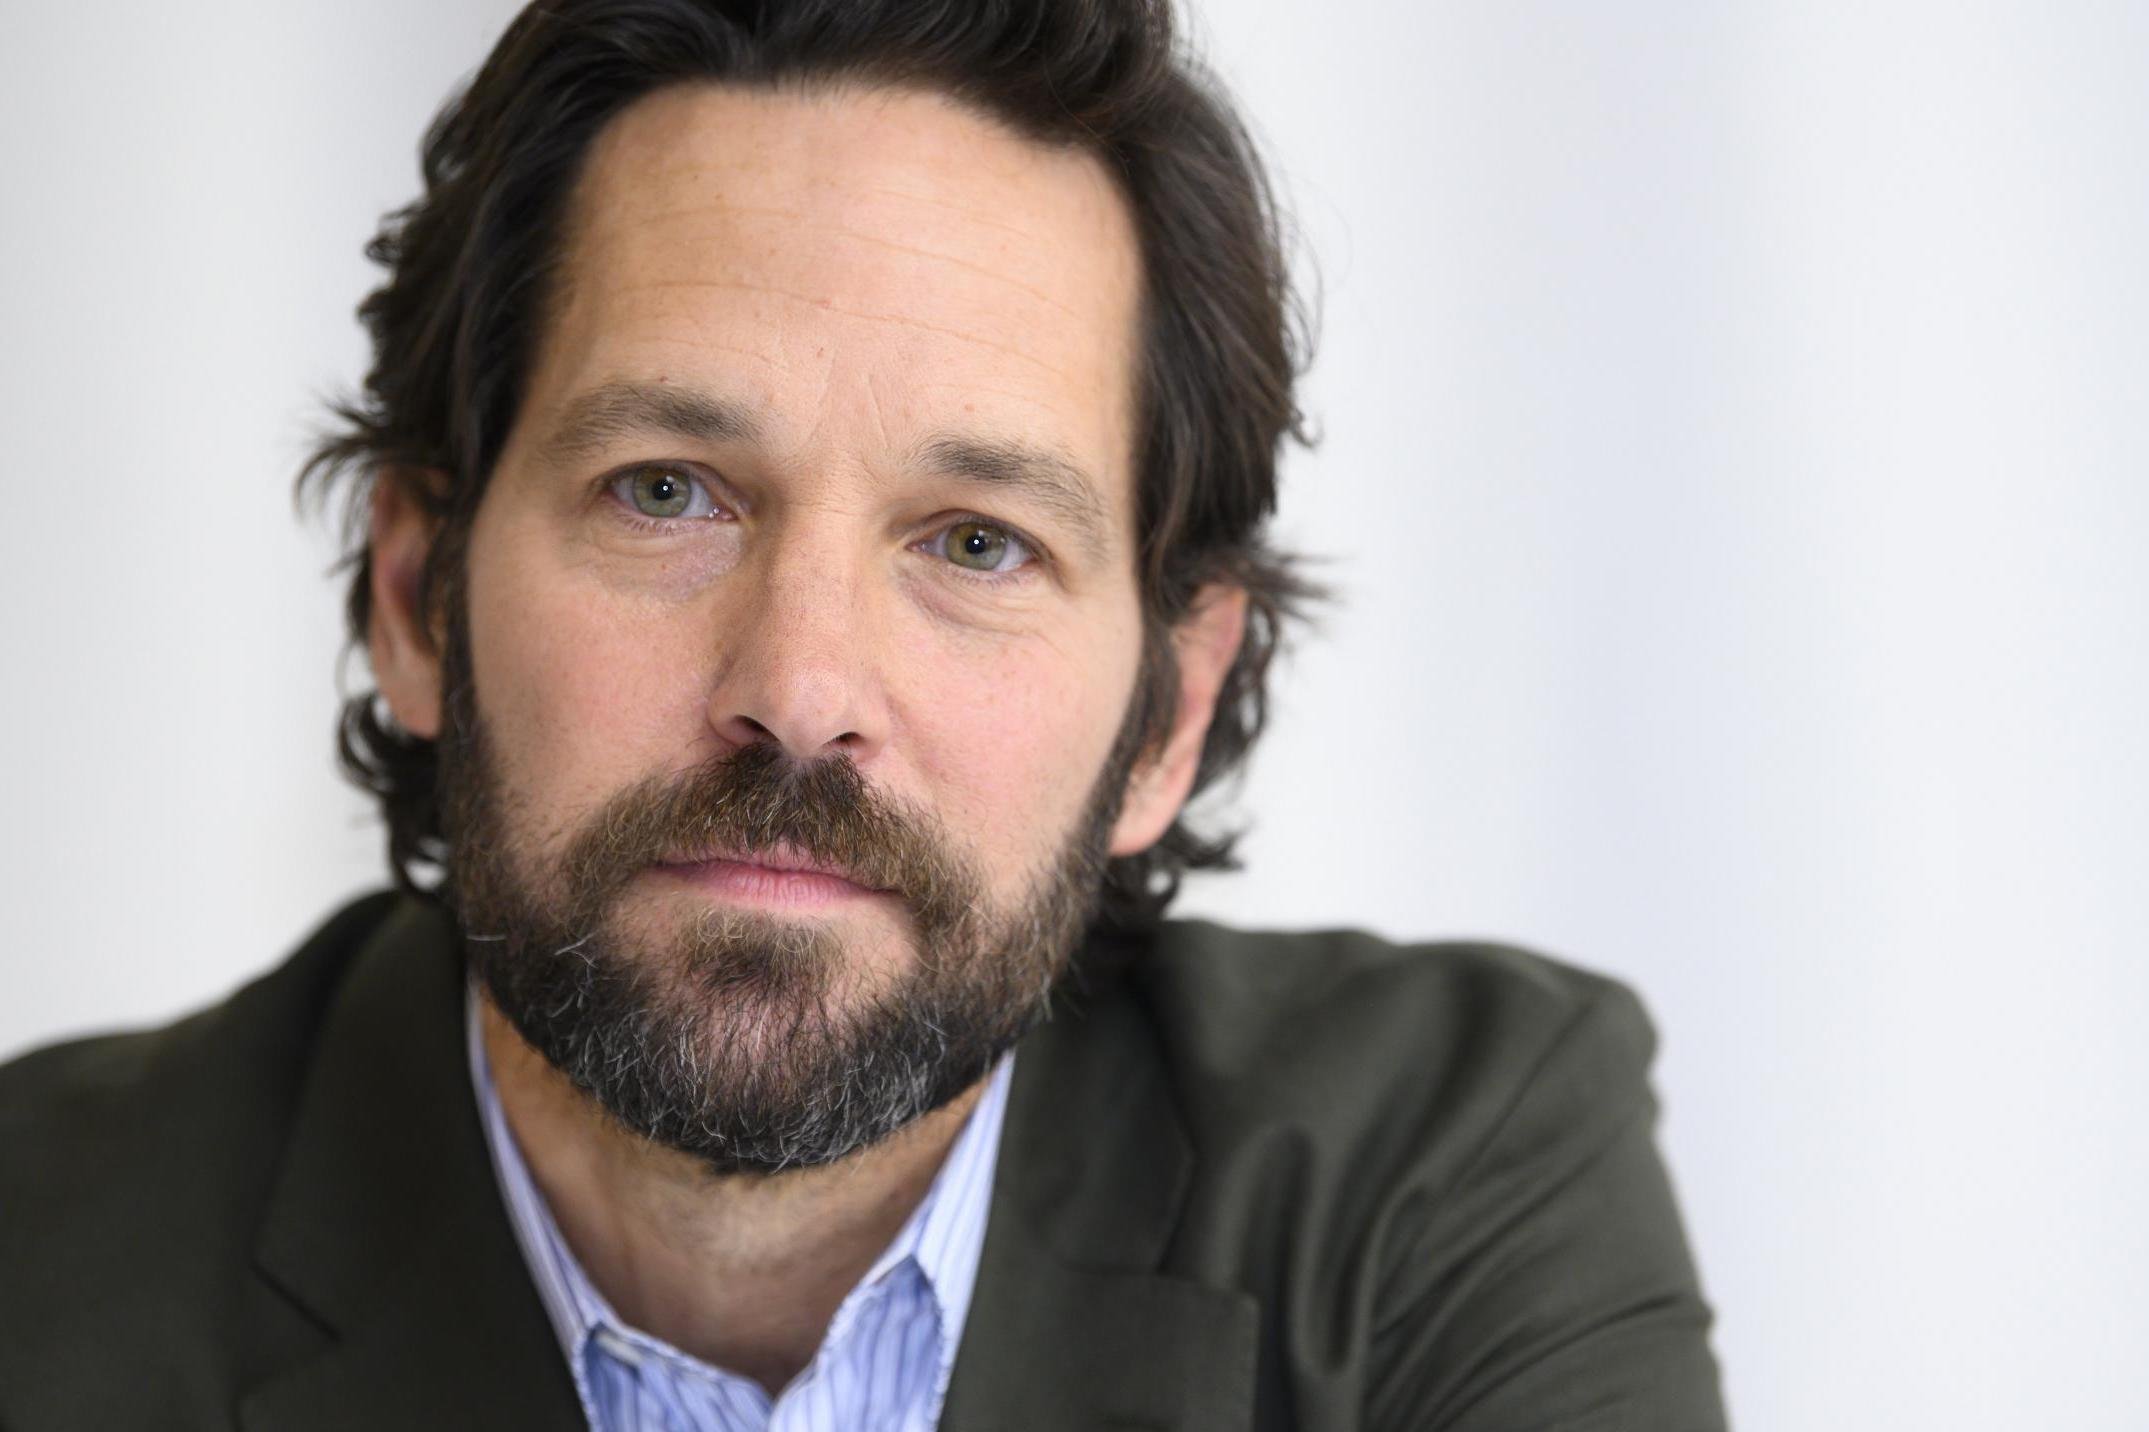 Paul Rudd: 'In private, I'm dealing with all the scars and traumas of real life'